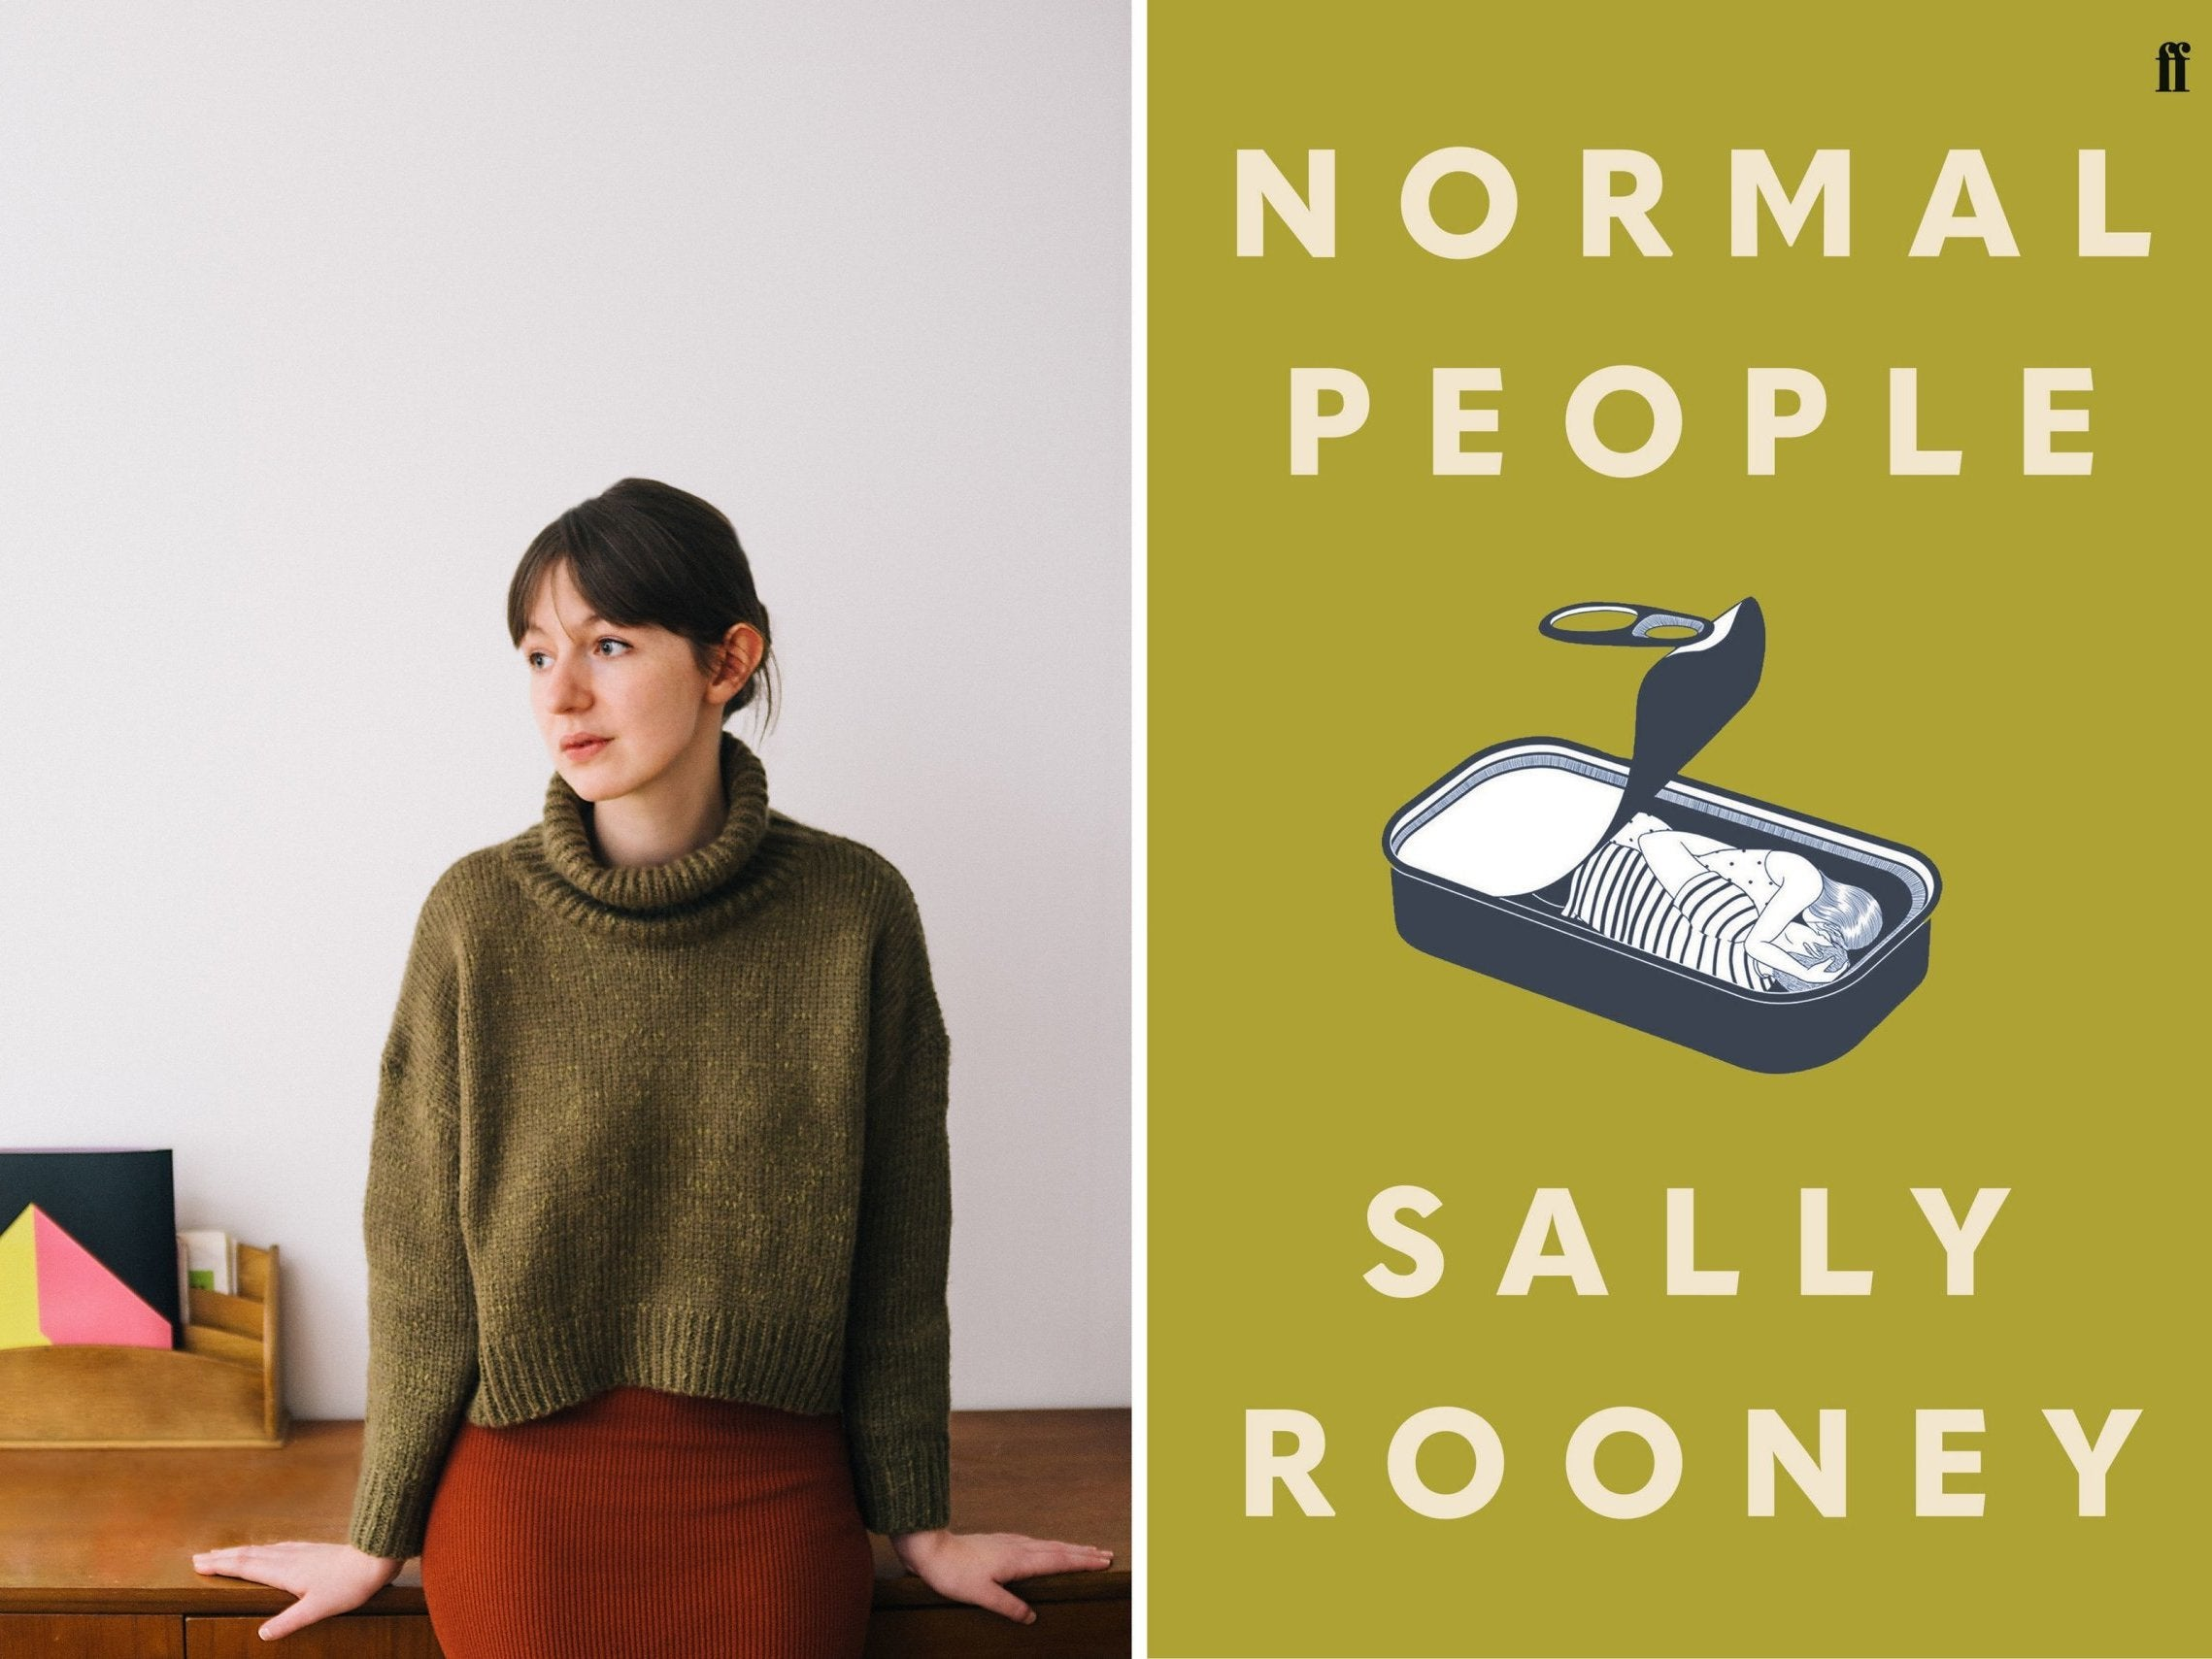 Costa Book Award Category Winners Announced With Irish Author Sally Rooney Taking Novel Prize The Independent The Independent